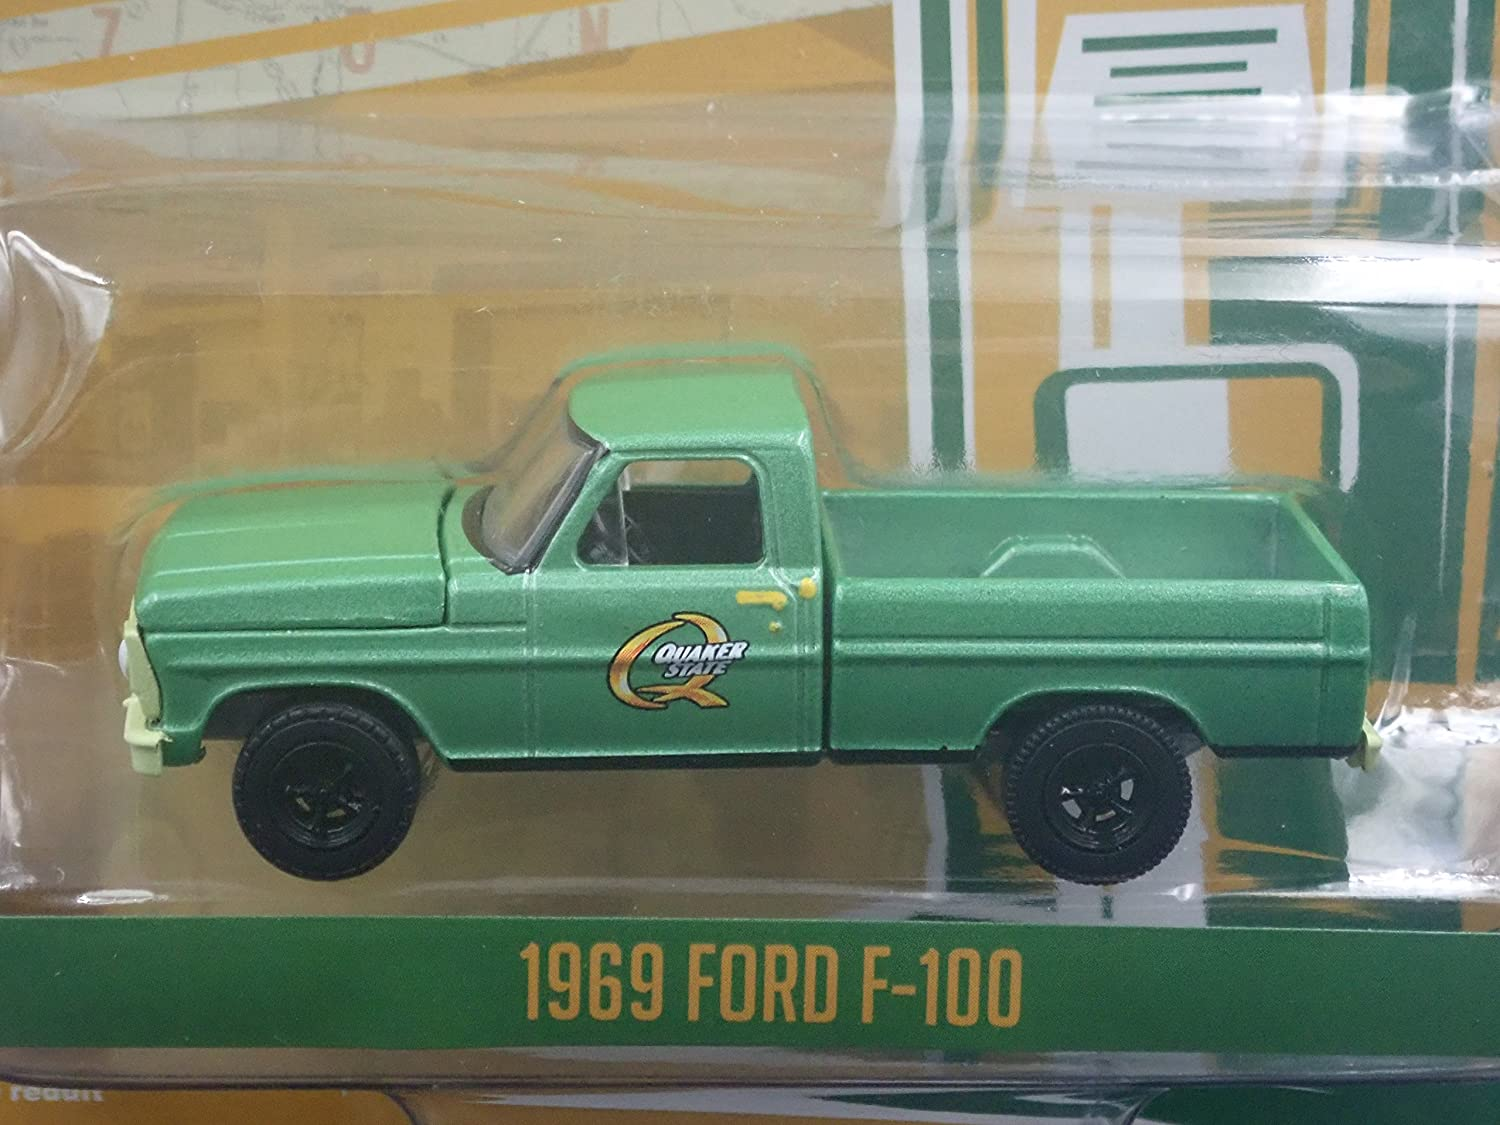 Greenlight Sold By Brtc 1969 Ford F100 Short Bed Pickup Truck Quaker State Rare 1 64 Diecast Model Toys Games